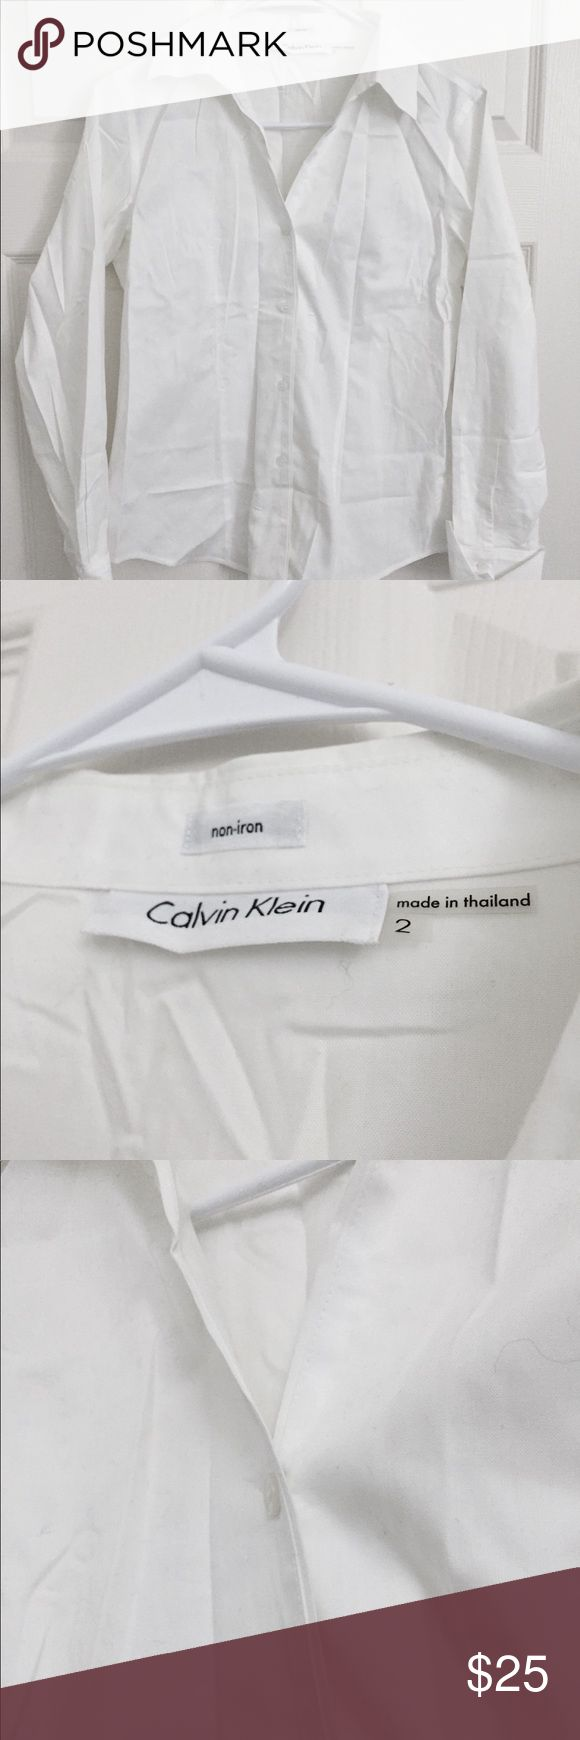 Calvin Klein white button down non iron shirt Calvin Klein white button down shirt Thick shirt material  Size 2 Non iron  (It was folded and stored in luggage bag that's why it looks crinkled..if you hang it nicely it should be easy to care)  - bundle to save Calvin Klein Tops Button Down Shirts